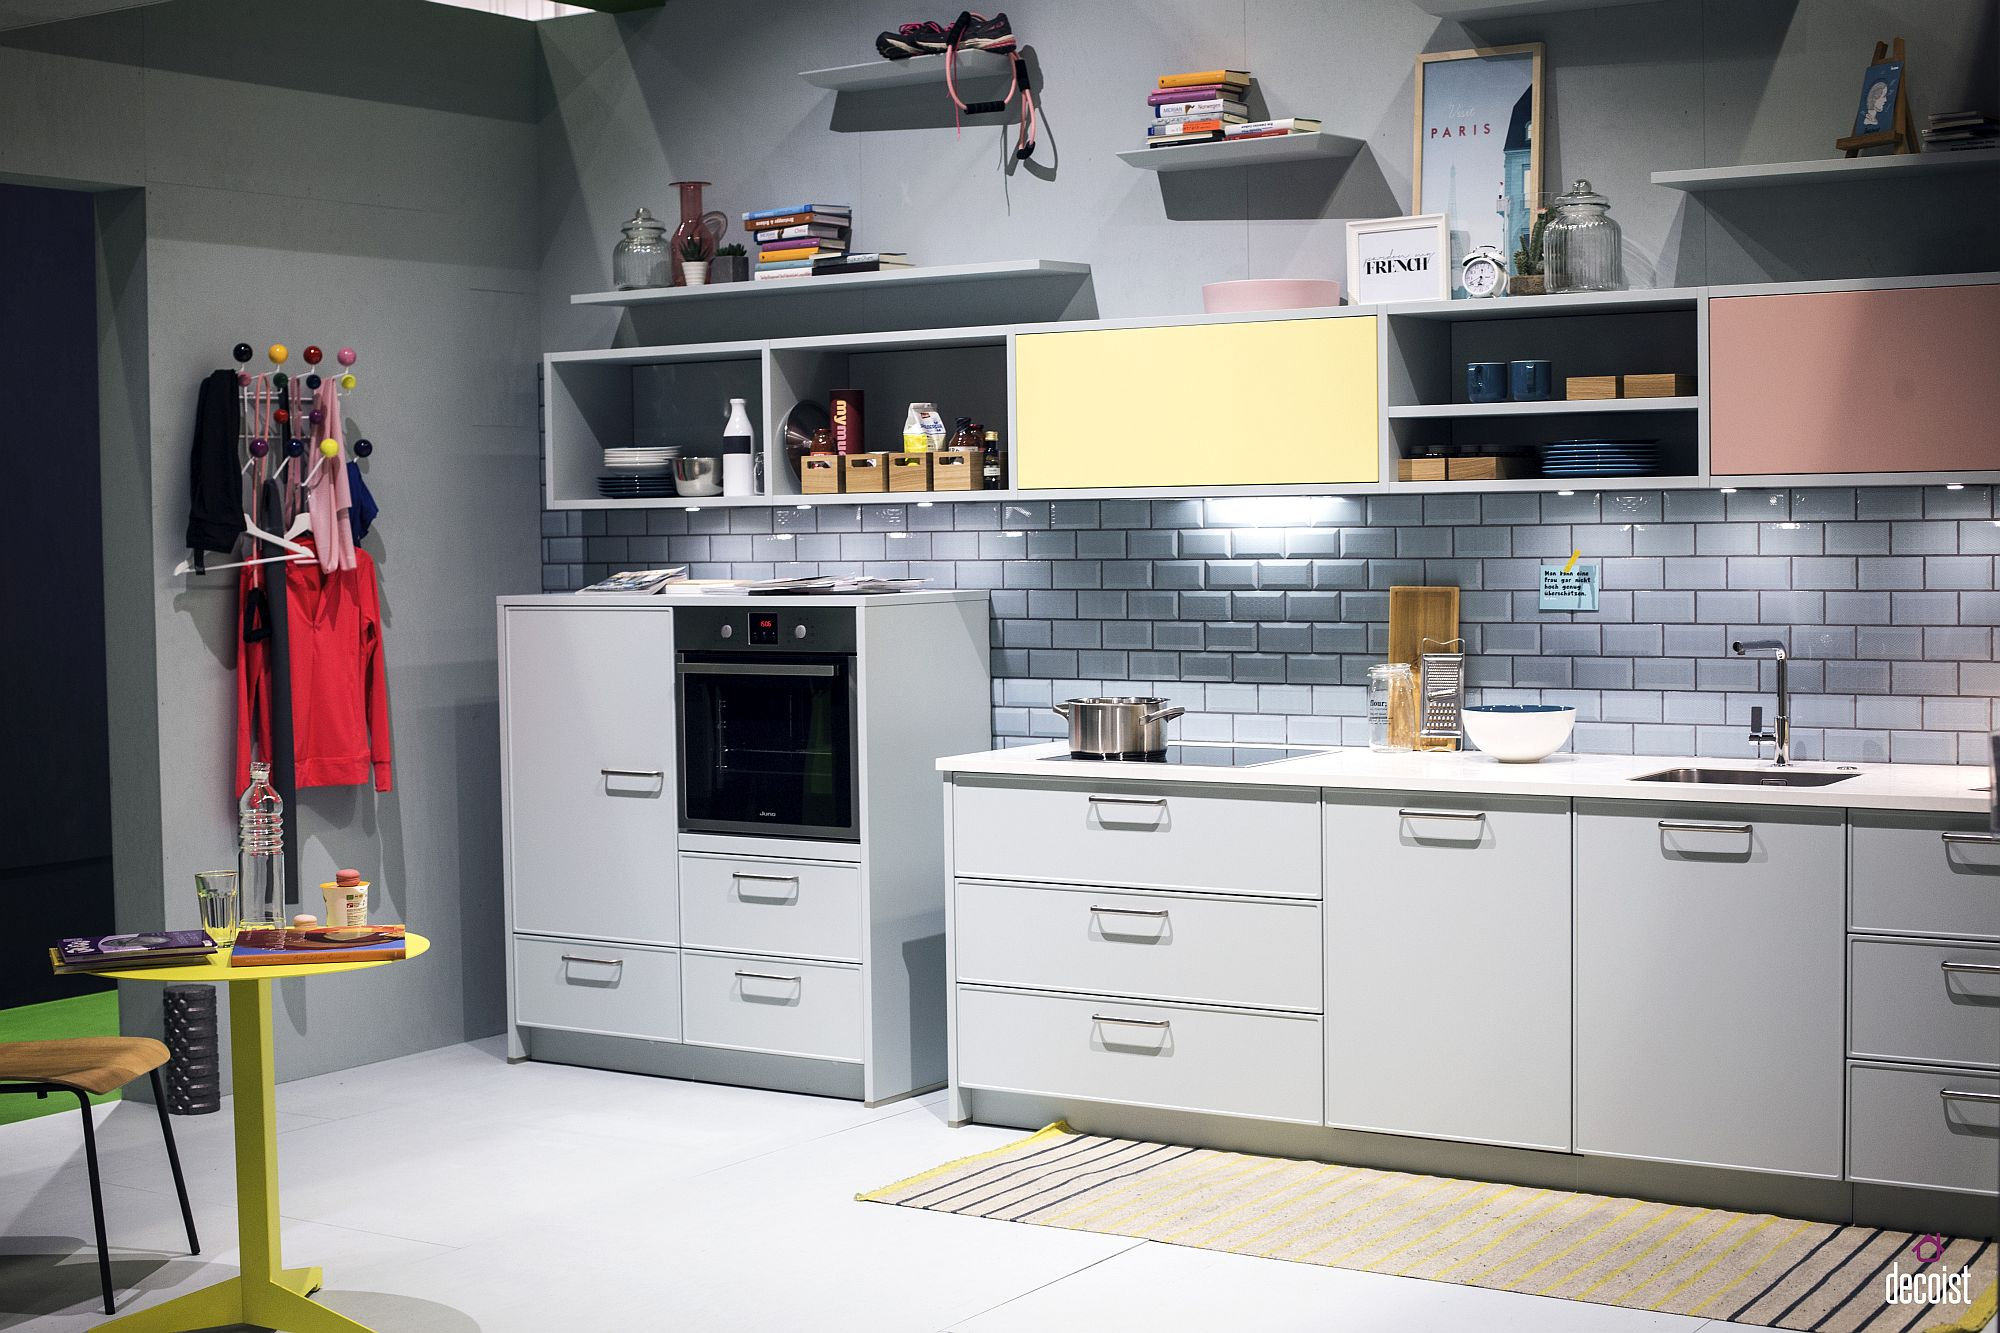 Bluish-gray is a popular choice in the mdoern kitchen